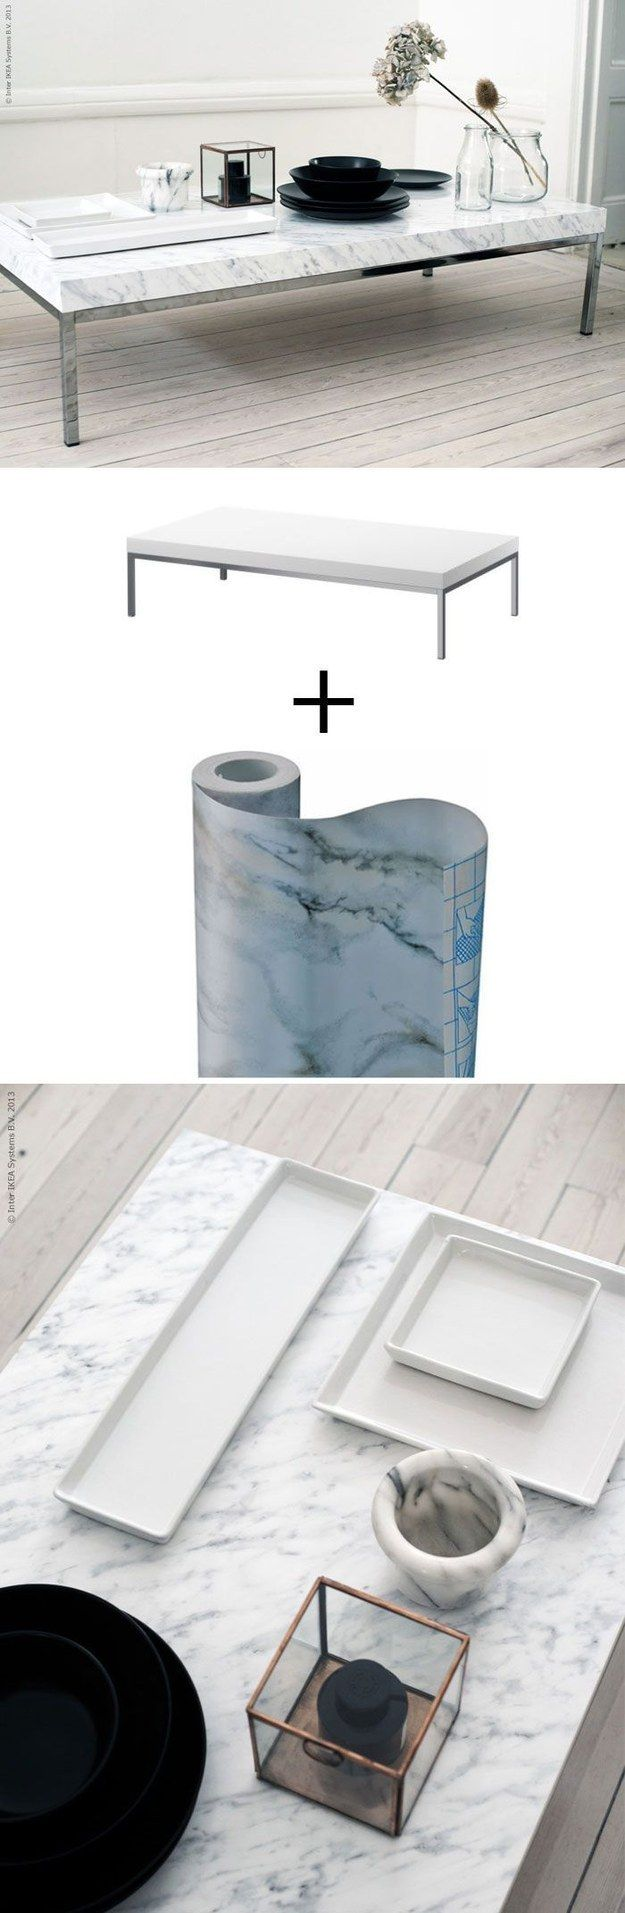 Ikea Klubbo Couchtisch Cover The Klubbo Coffee Table 49 99 With Marble Contact Paper